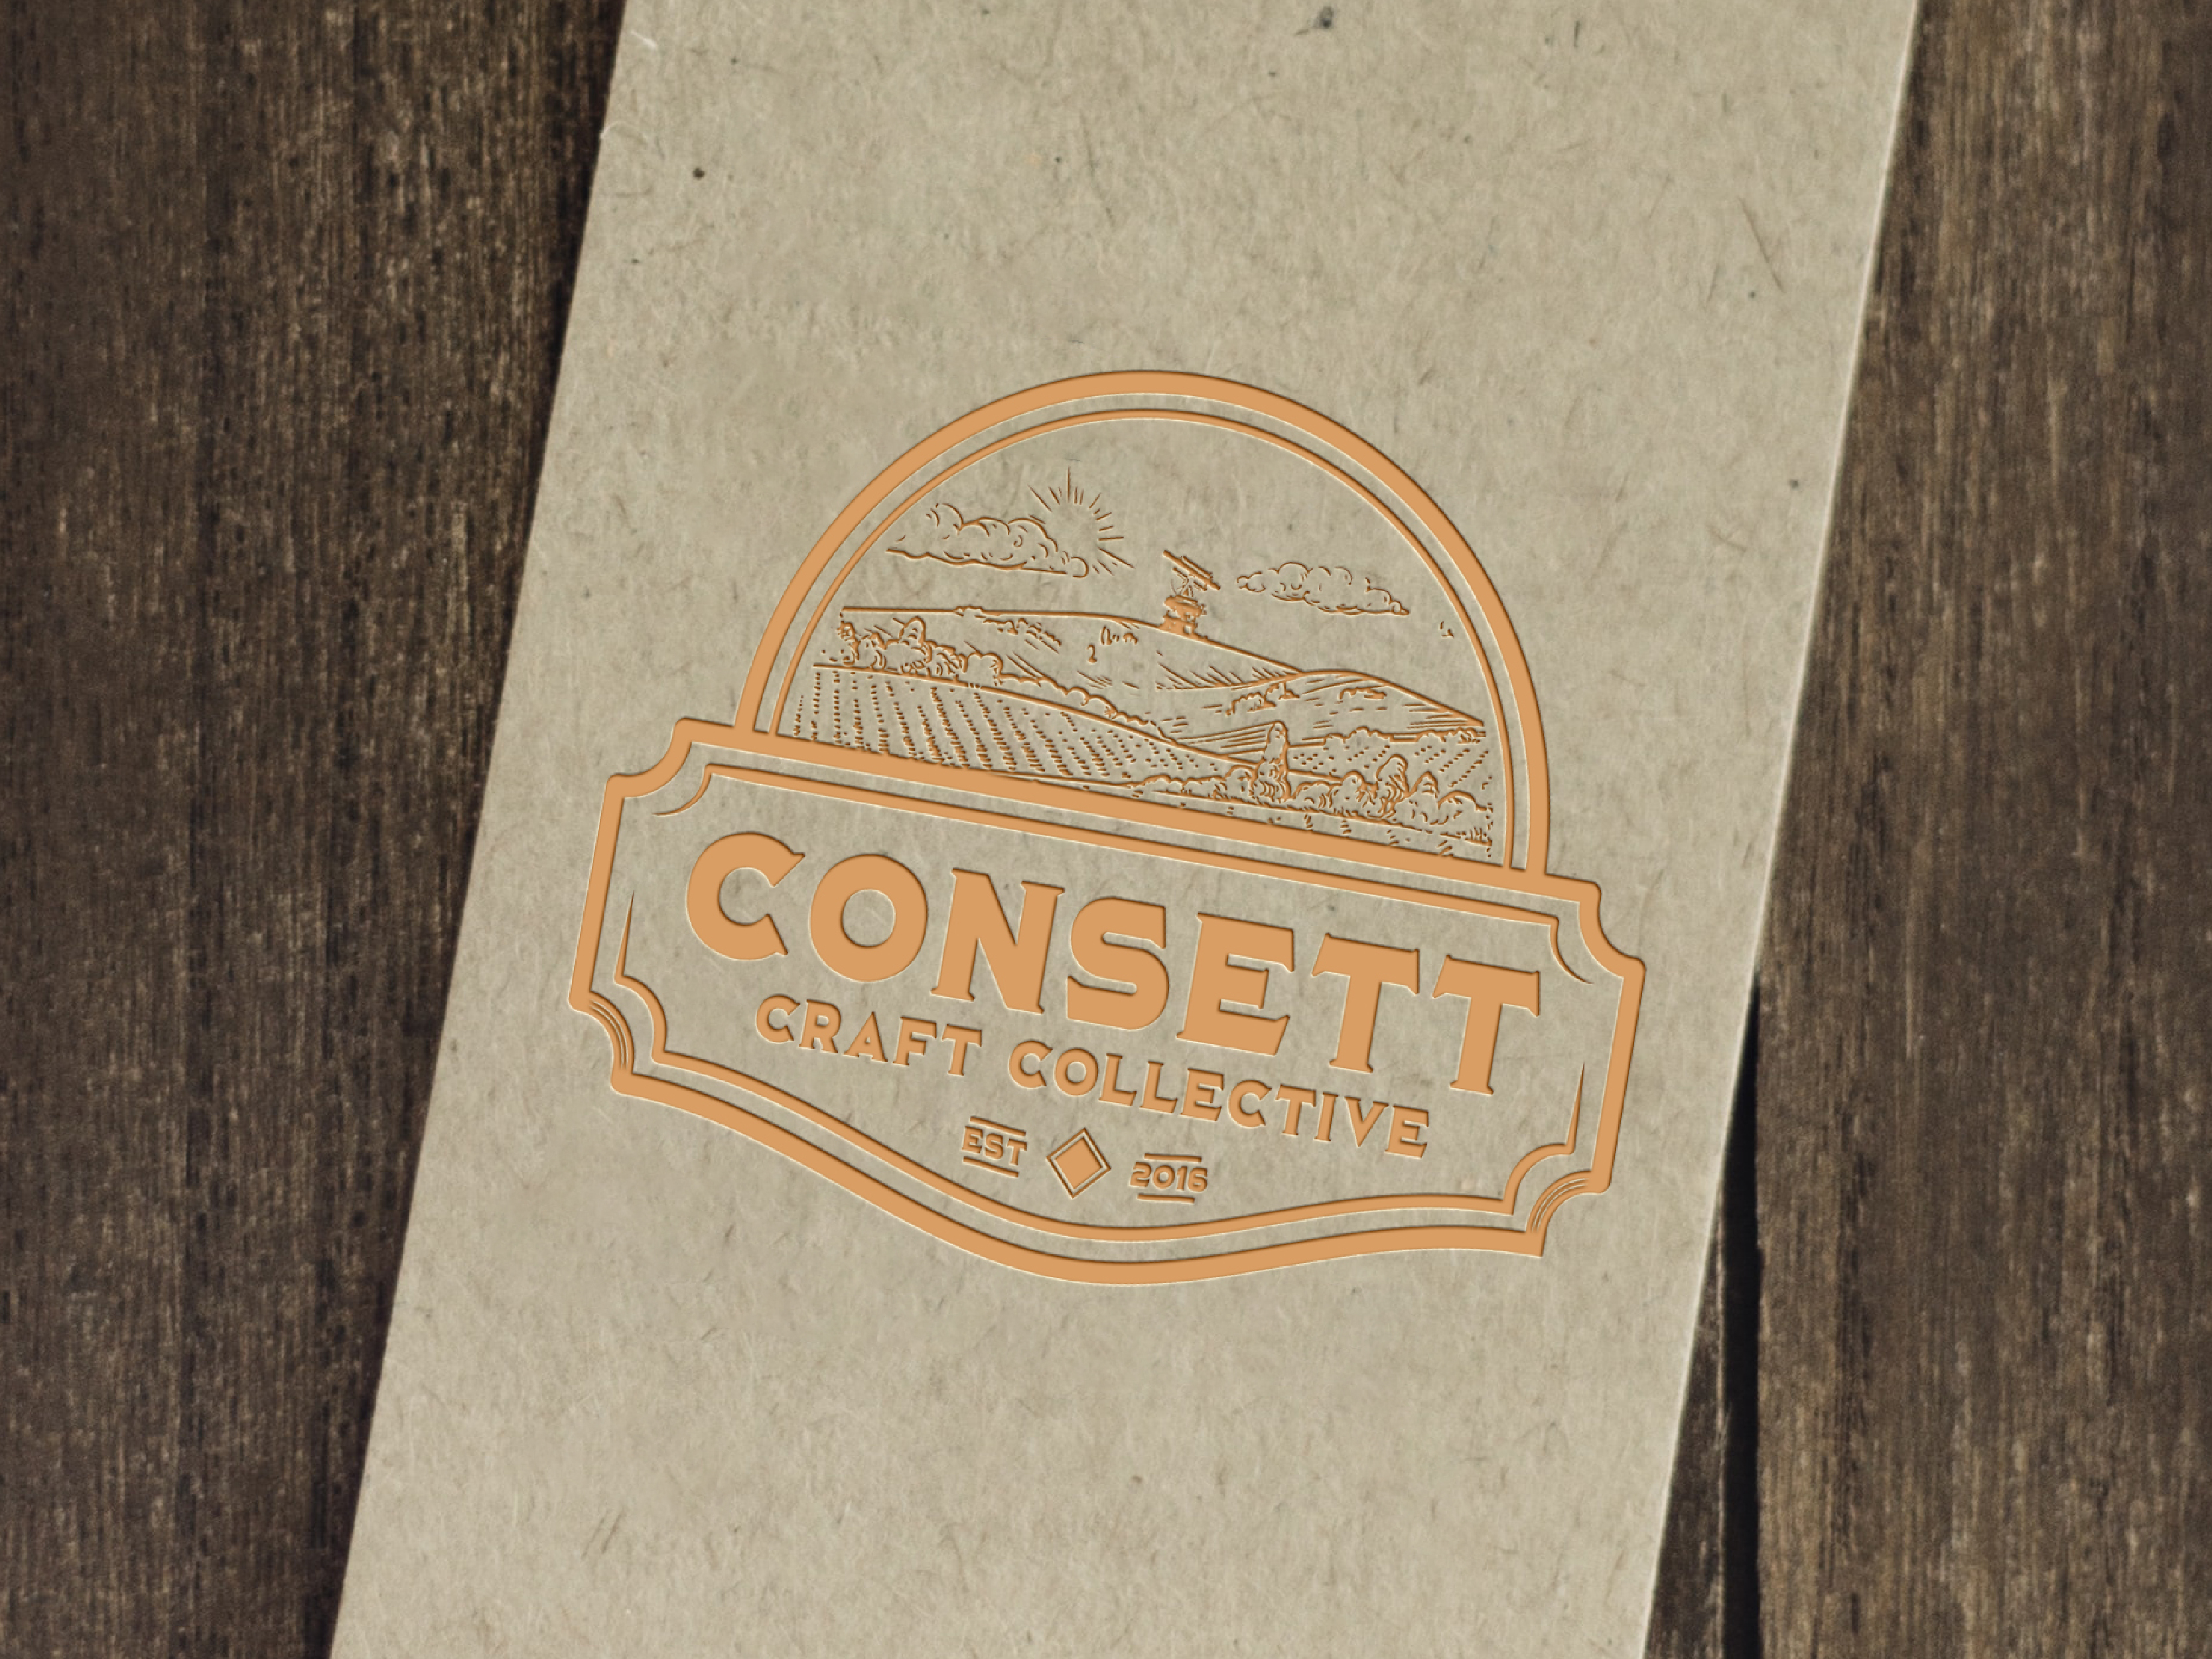 A mocked up logo embossed on recycled card. On Top of a wooden surface